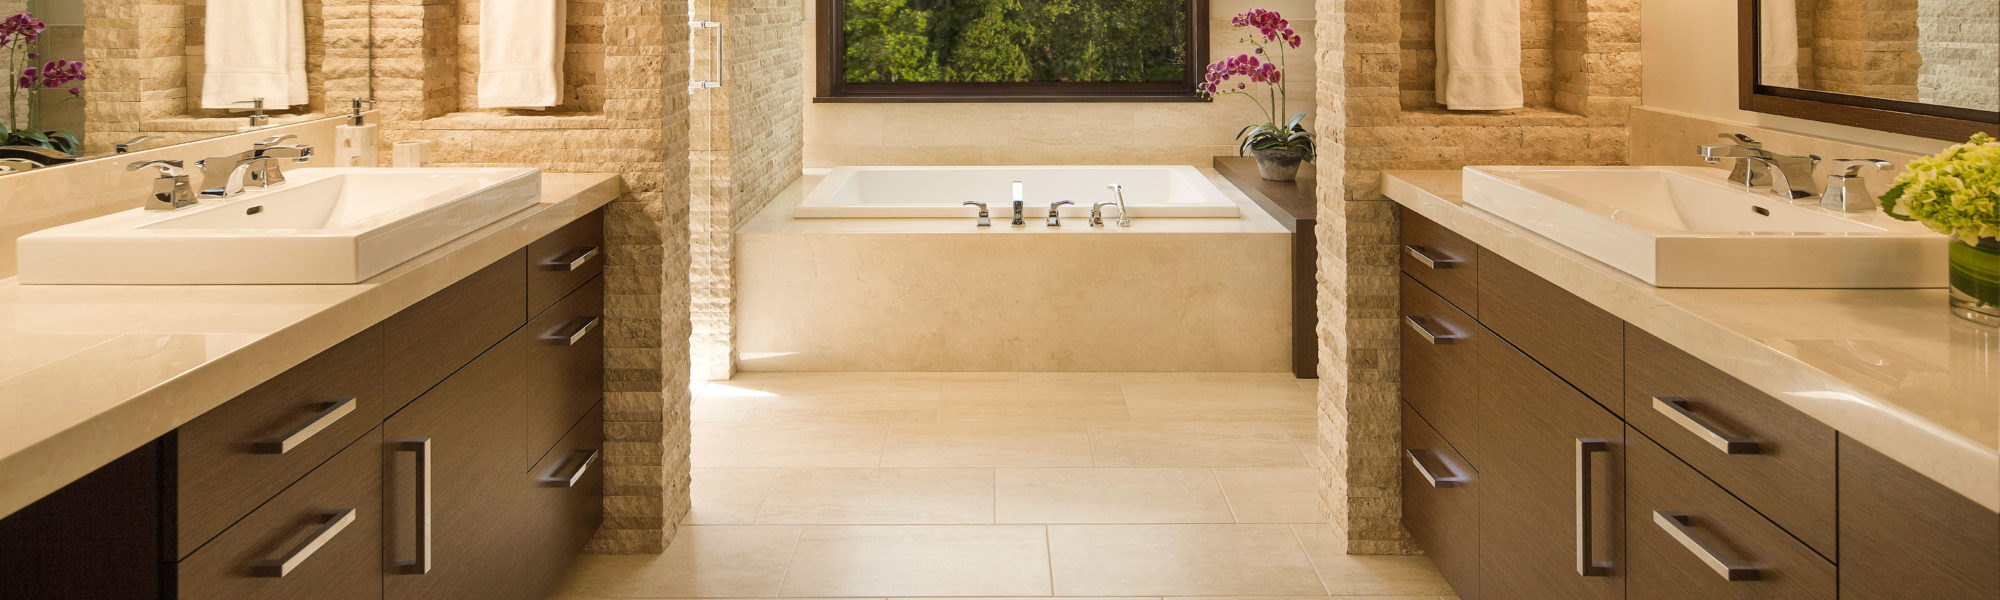 Bathtubs Faucets North County Plumbing Palm Beach